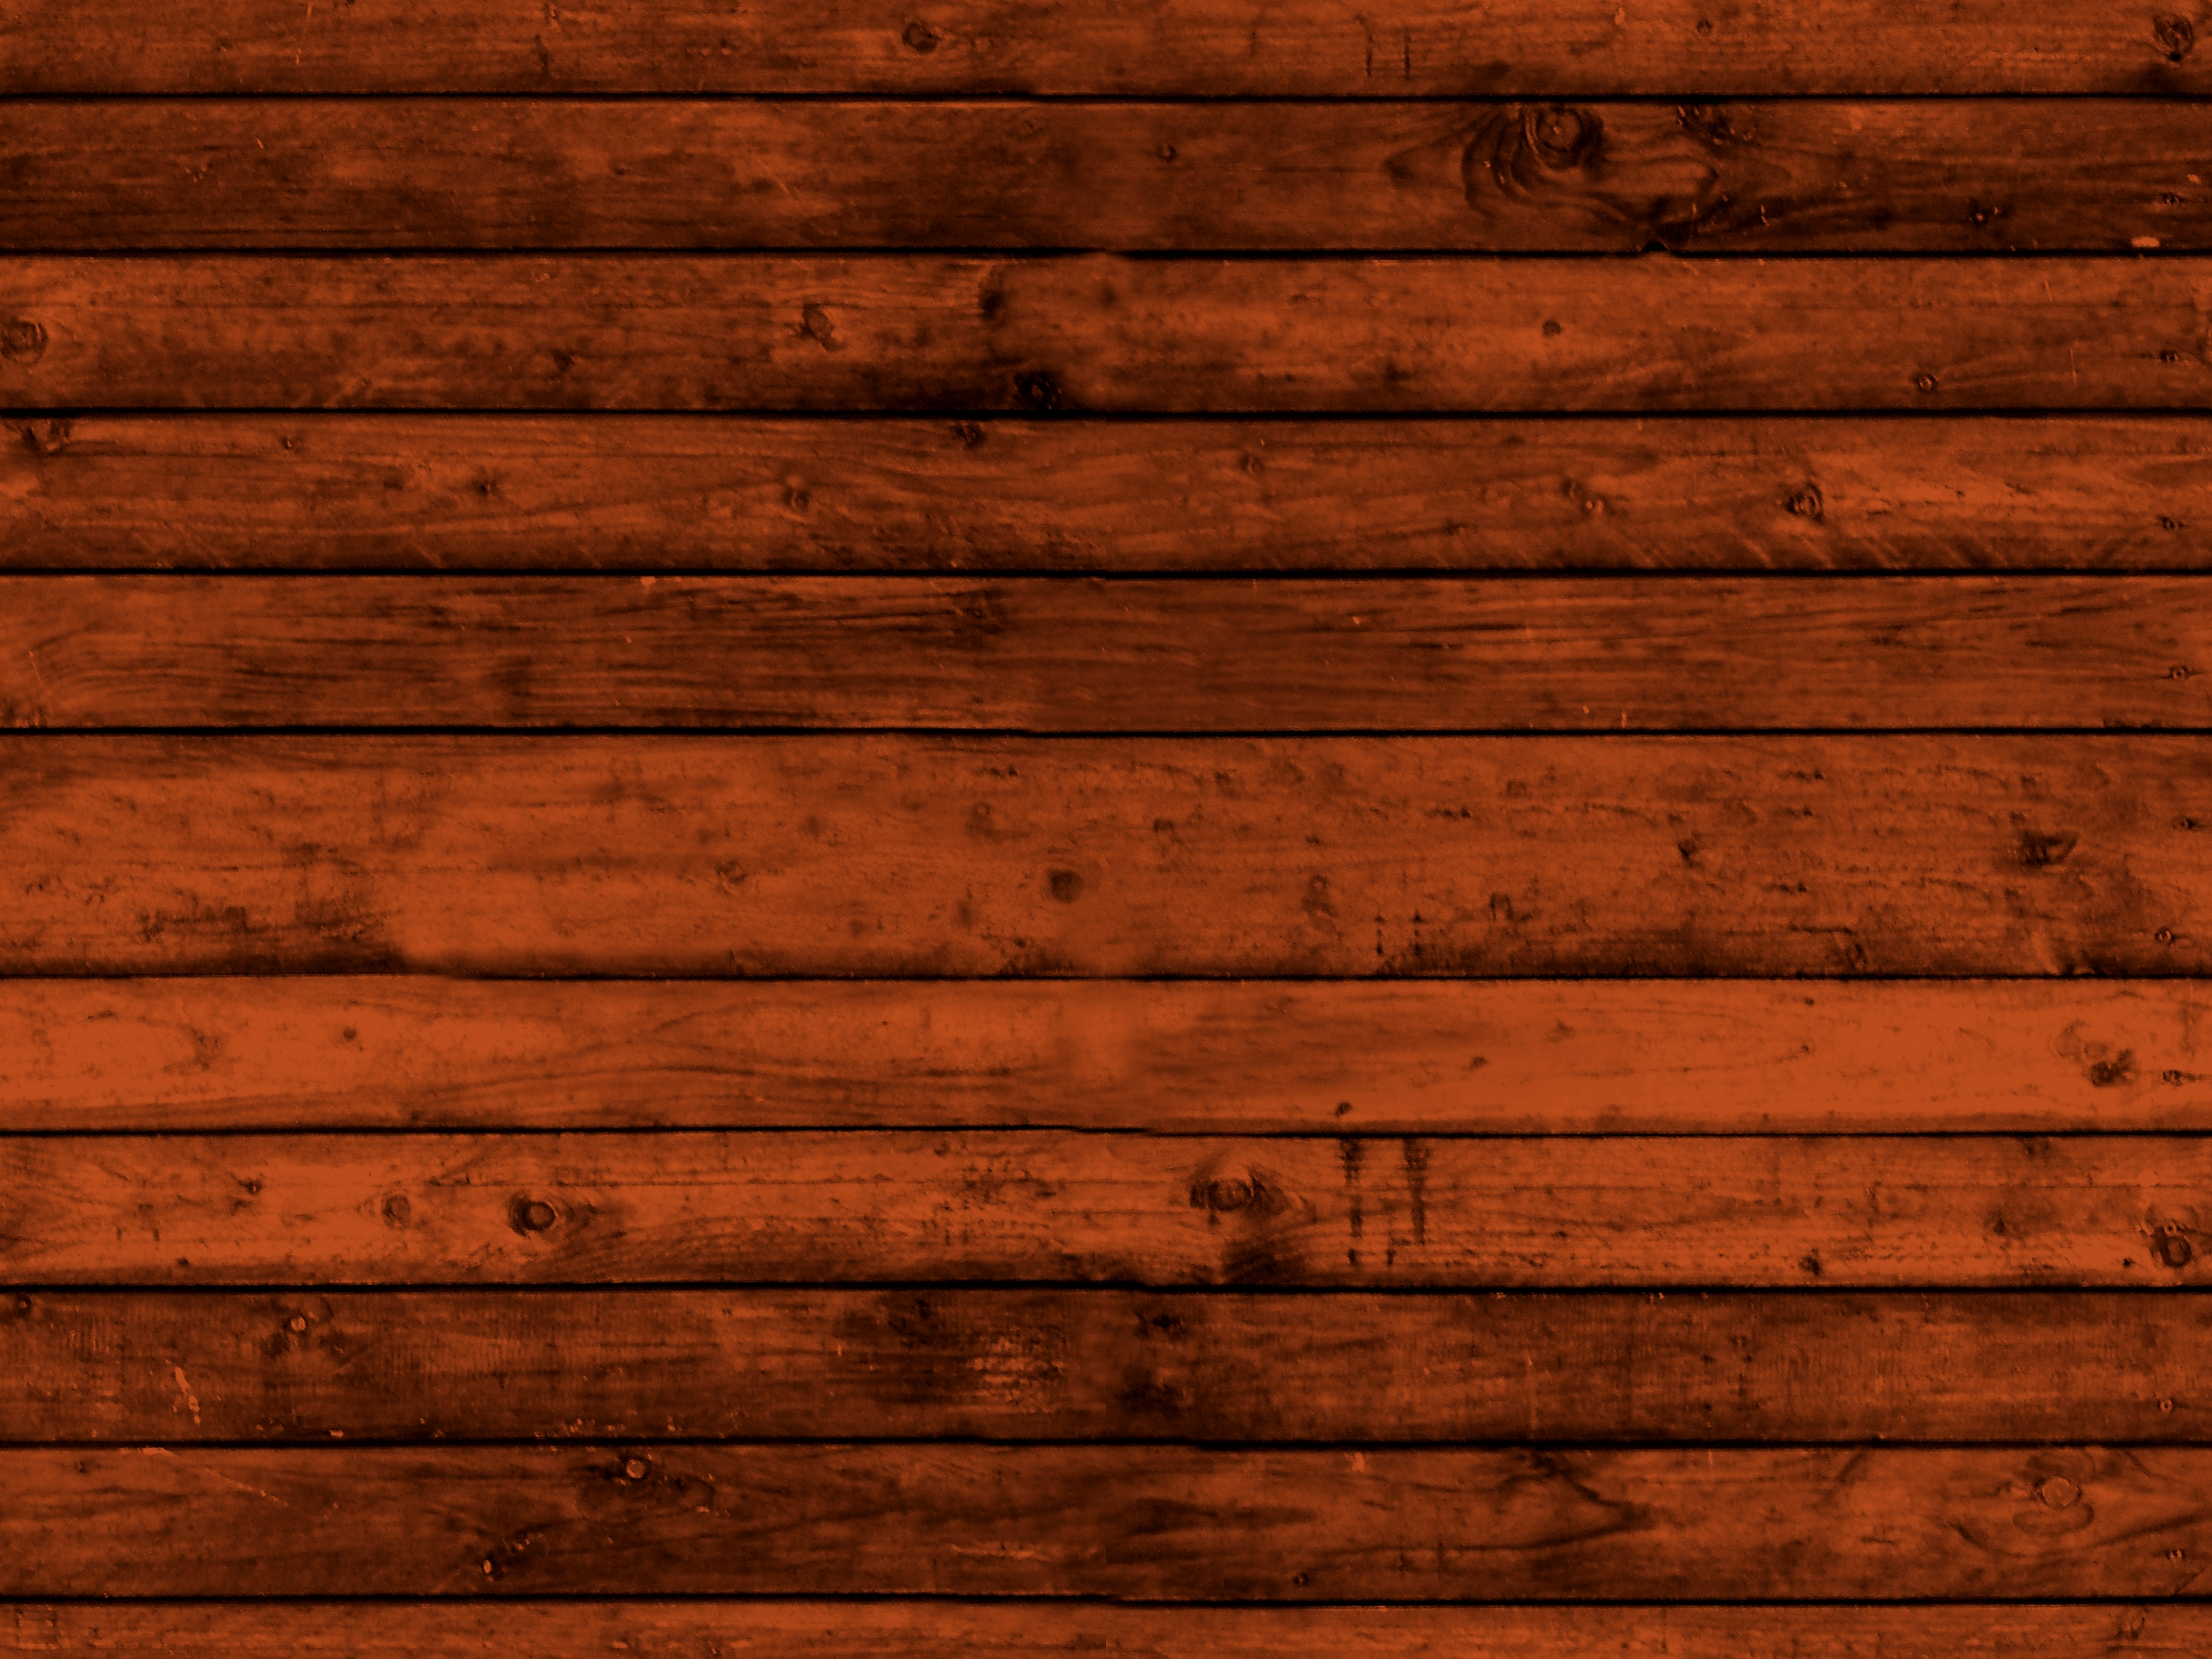 exterior house design textures html with 2012 03 01 Archive on Brown tan brick further 2012 03 01 archive in addition Wood planks also 56718 Graphicriver Roof Tile Background 5409656 in addition Photoshop Backgrounds   Files Free Download.